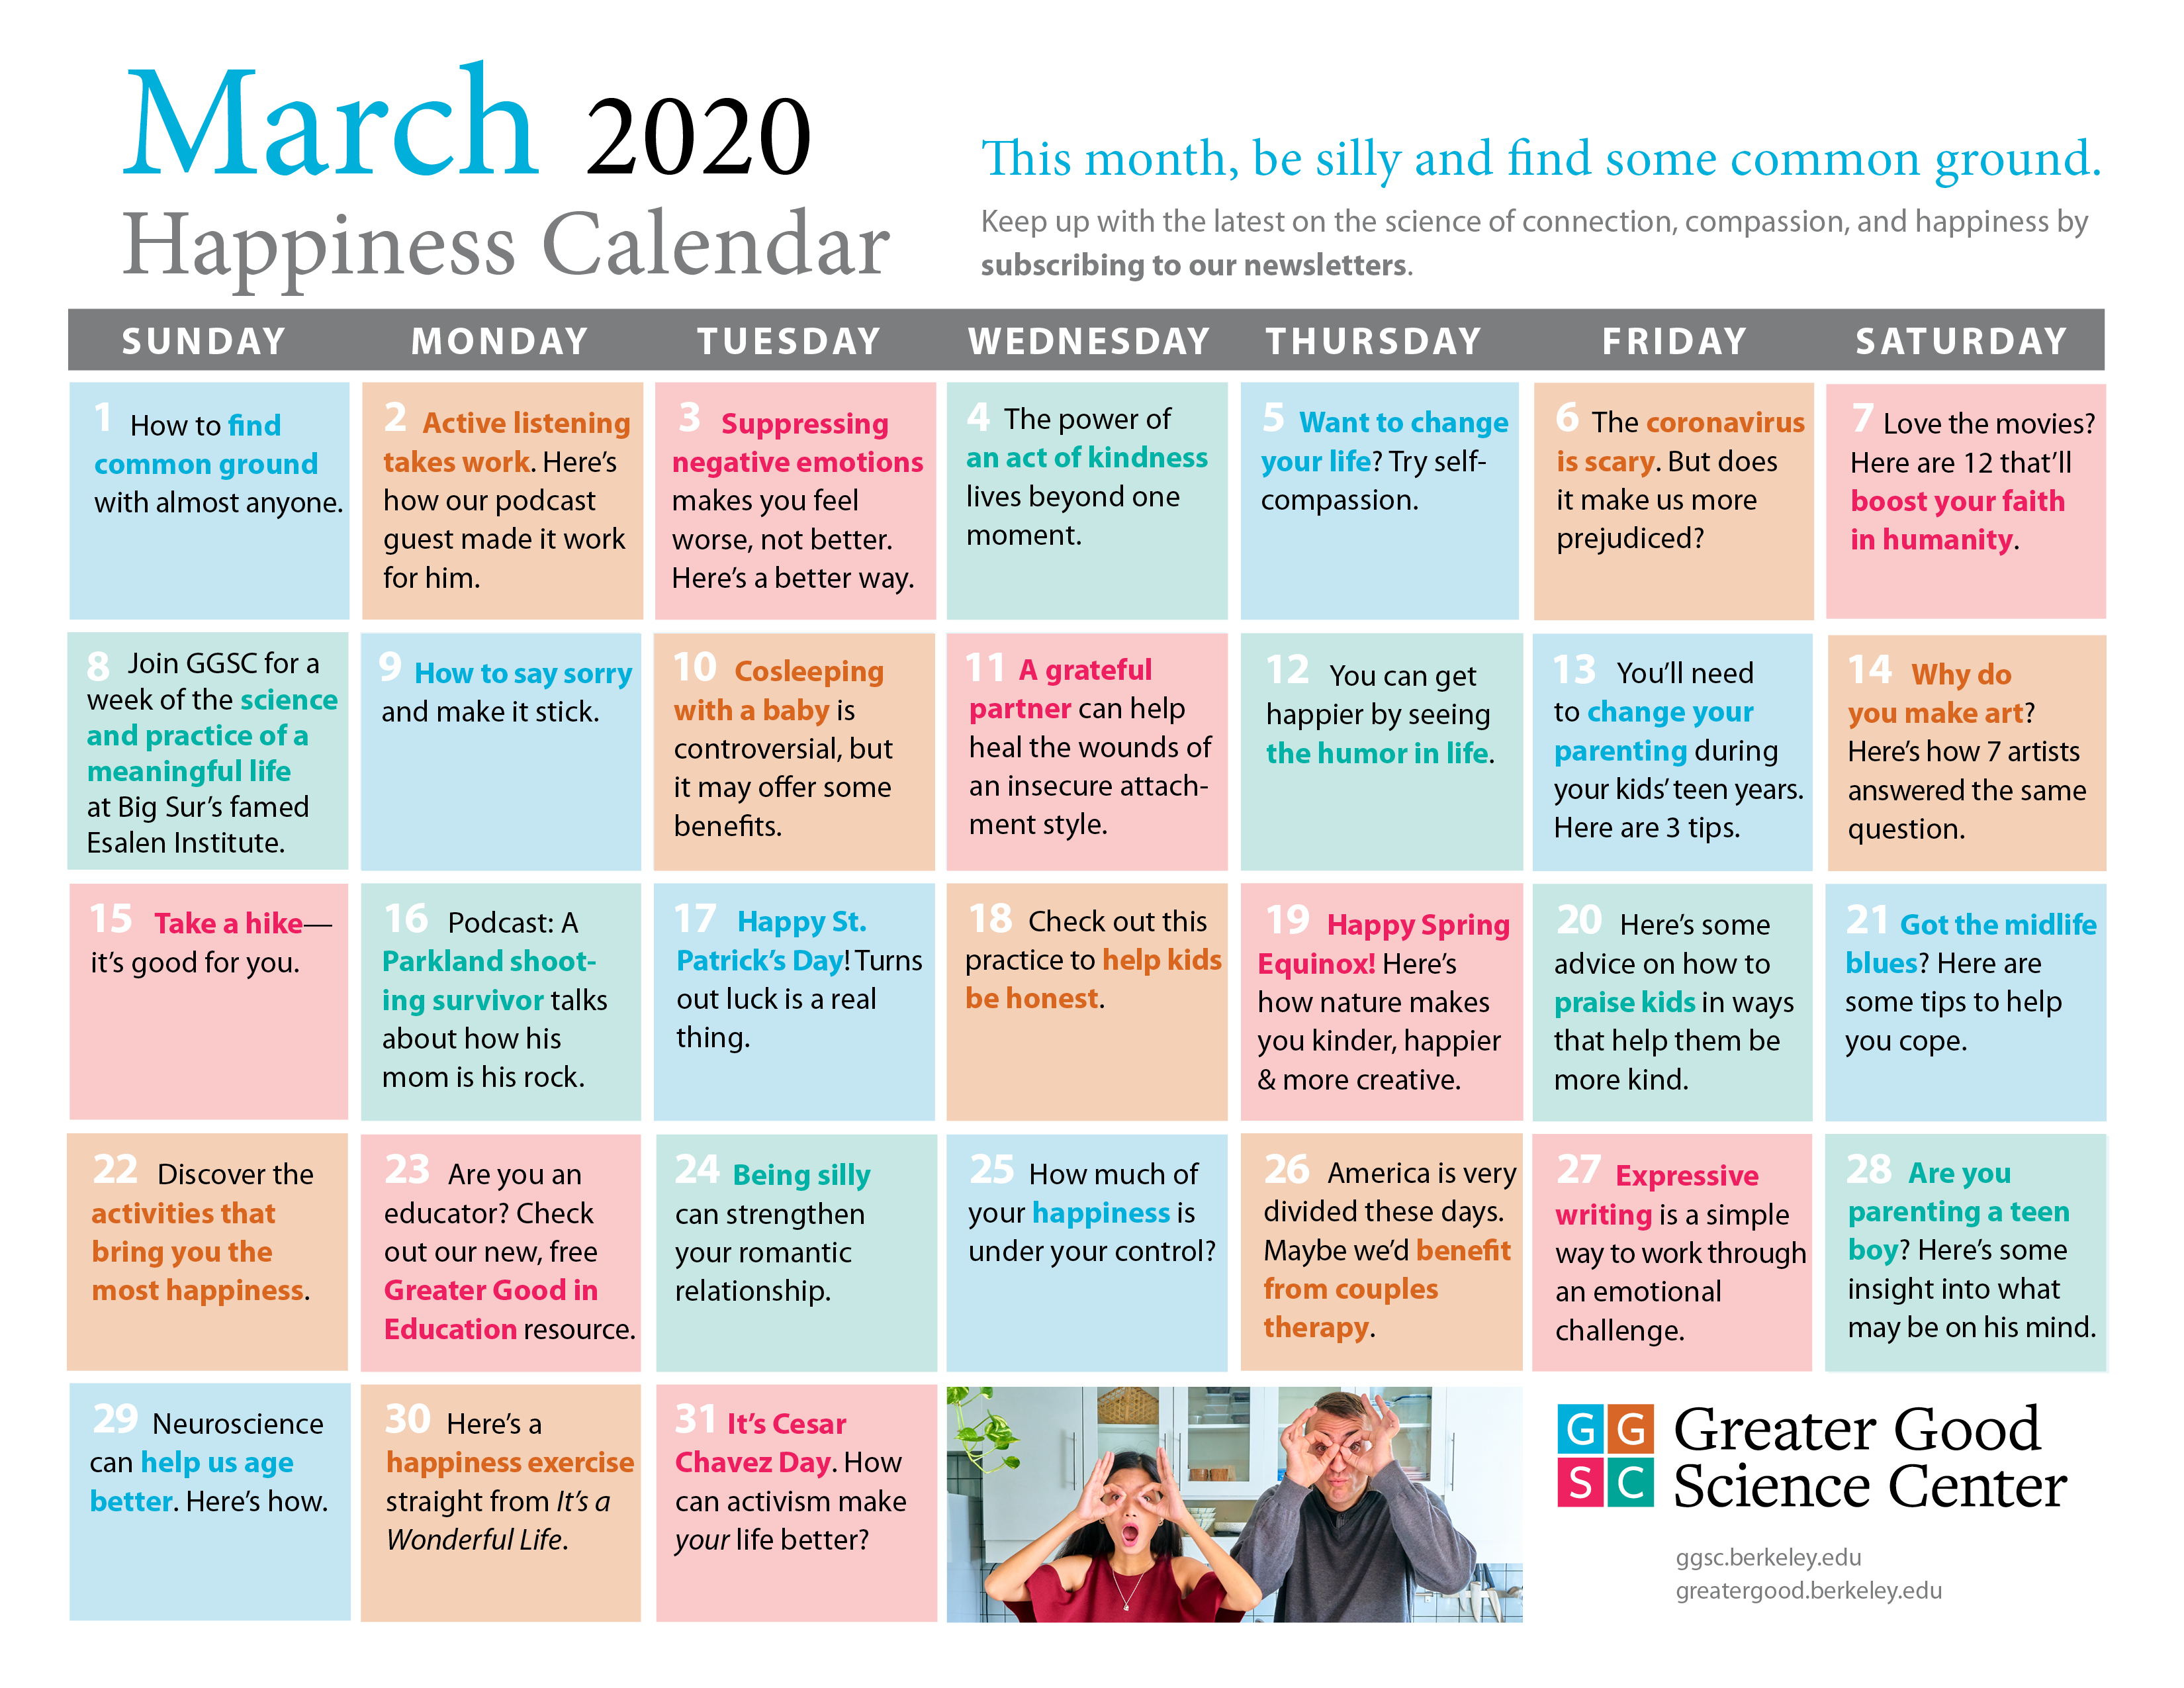 March 2020 Happiness Calendar